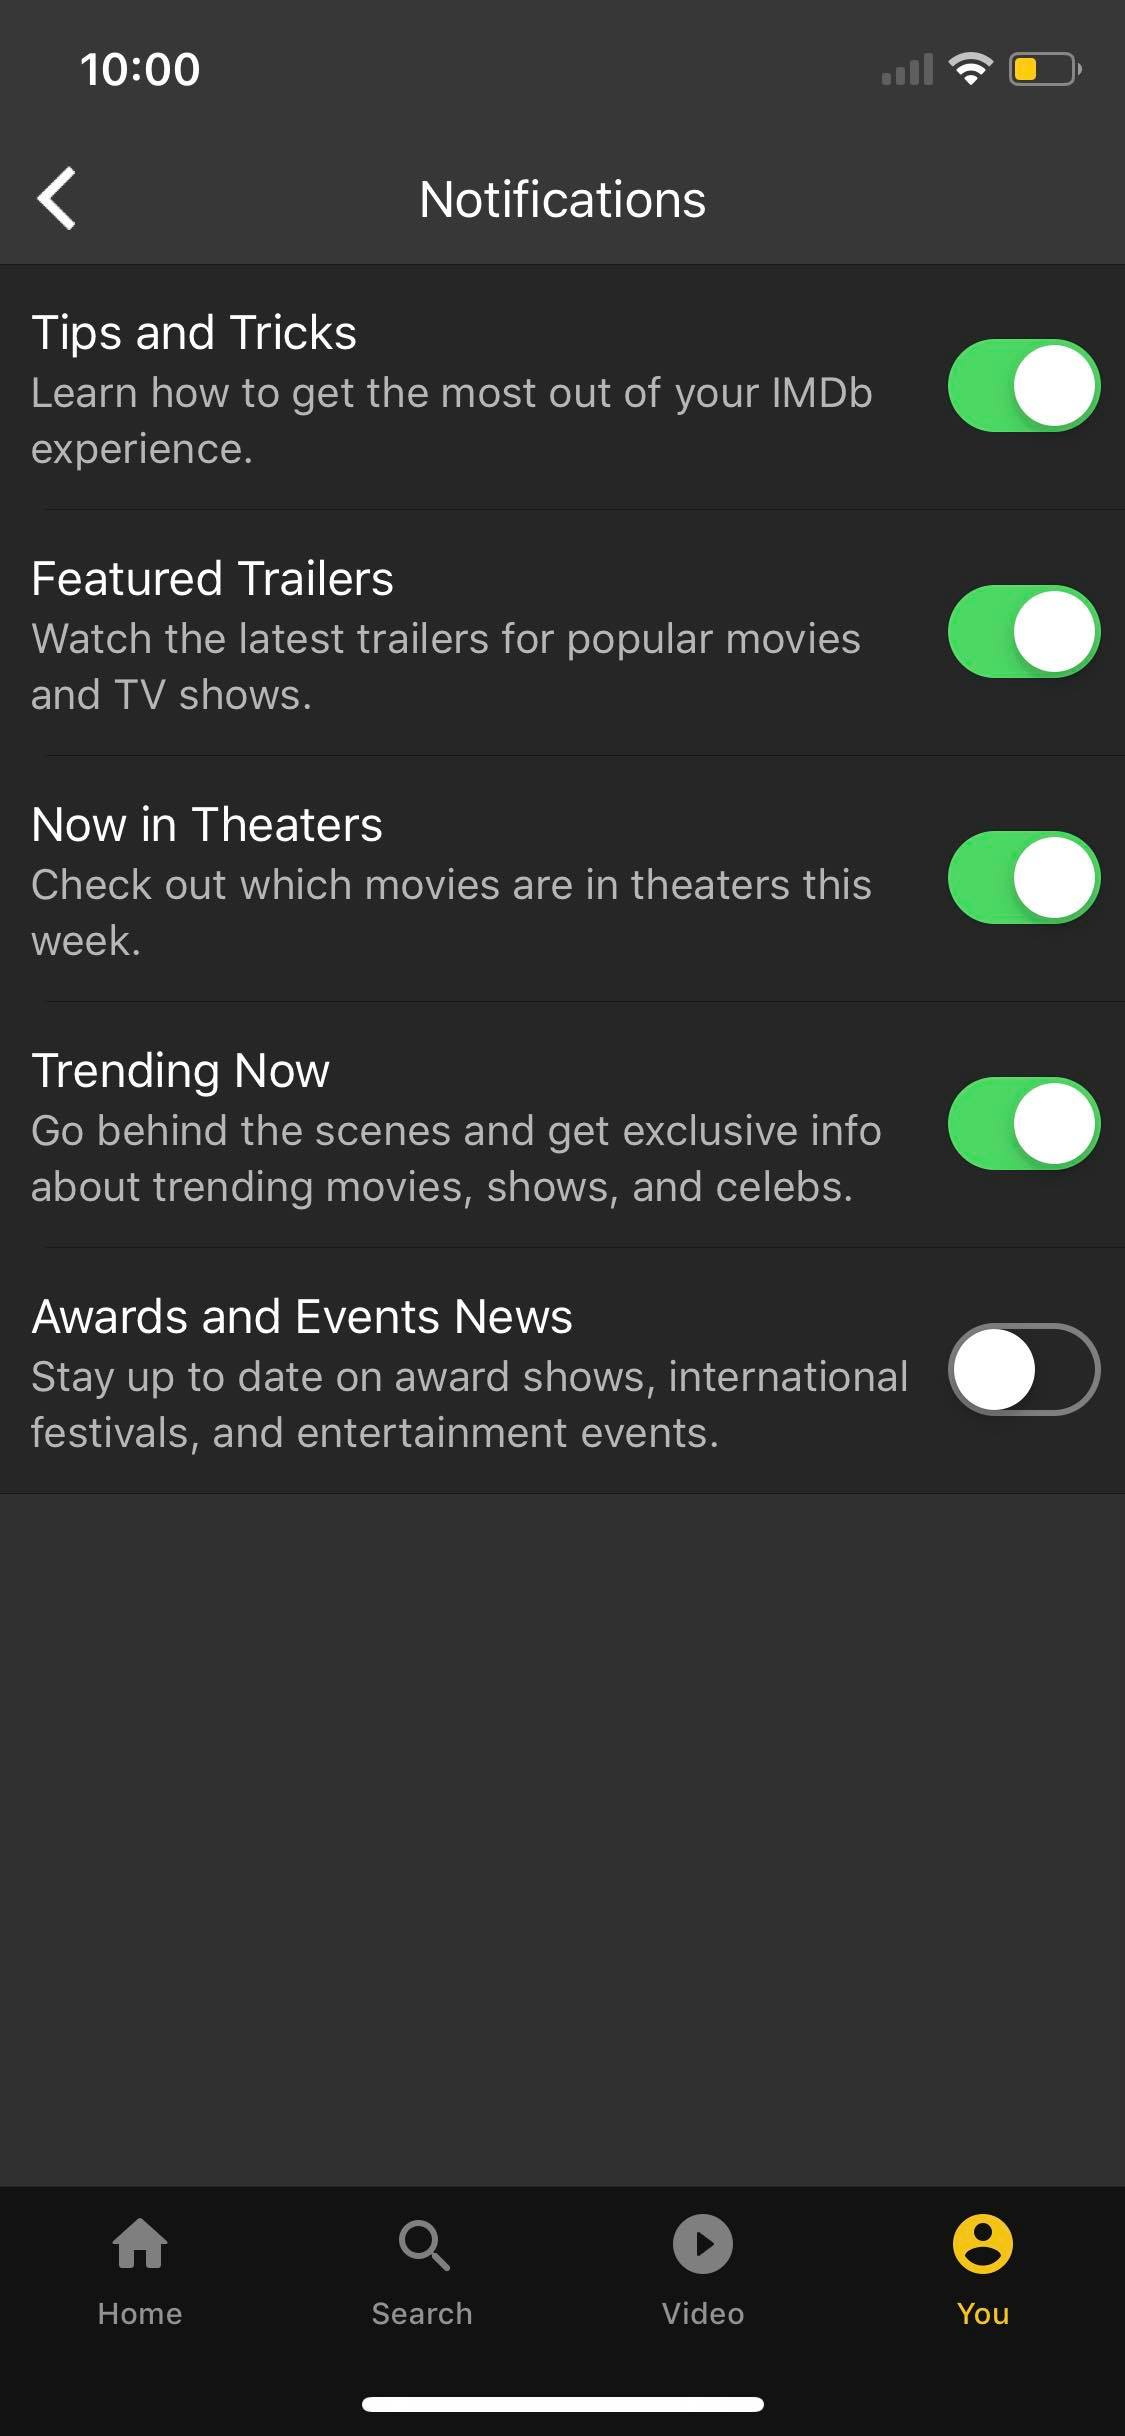 Notifications Settings on iOS by IMDb from UIGarage